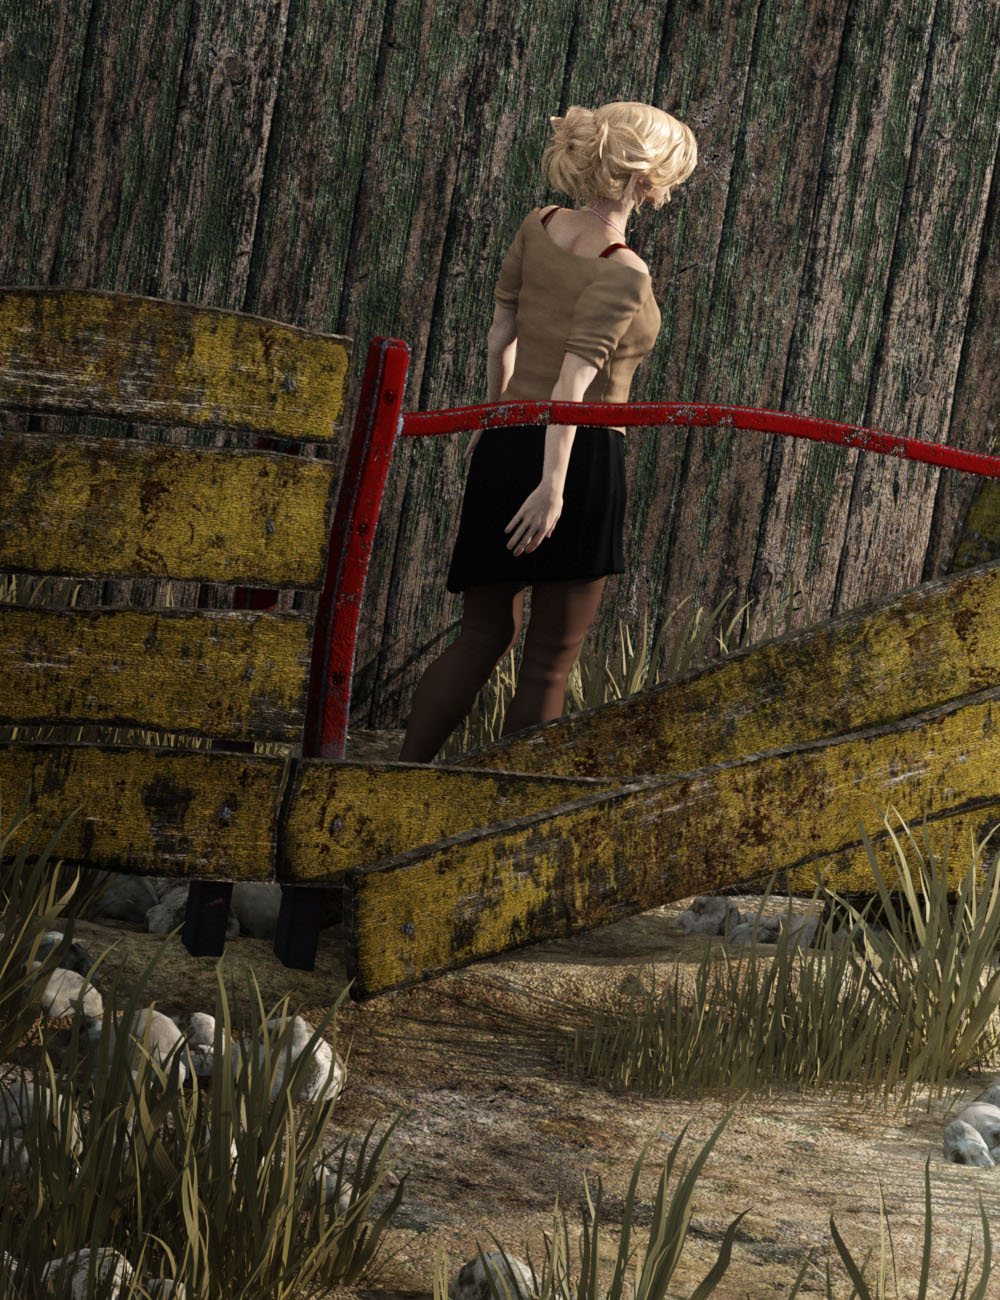 Wood Planks with Grounds by: vikike176, 3D Models by Daz 3D